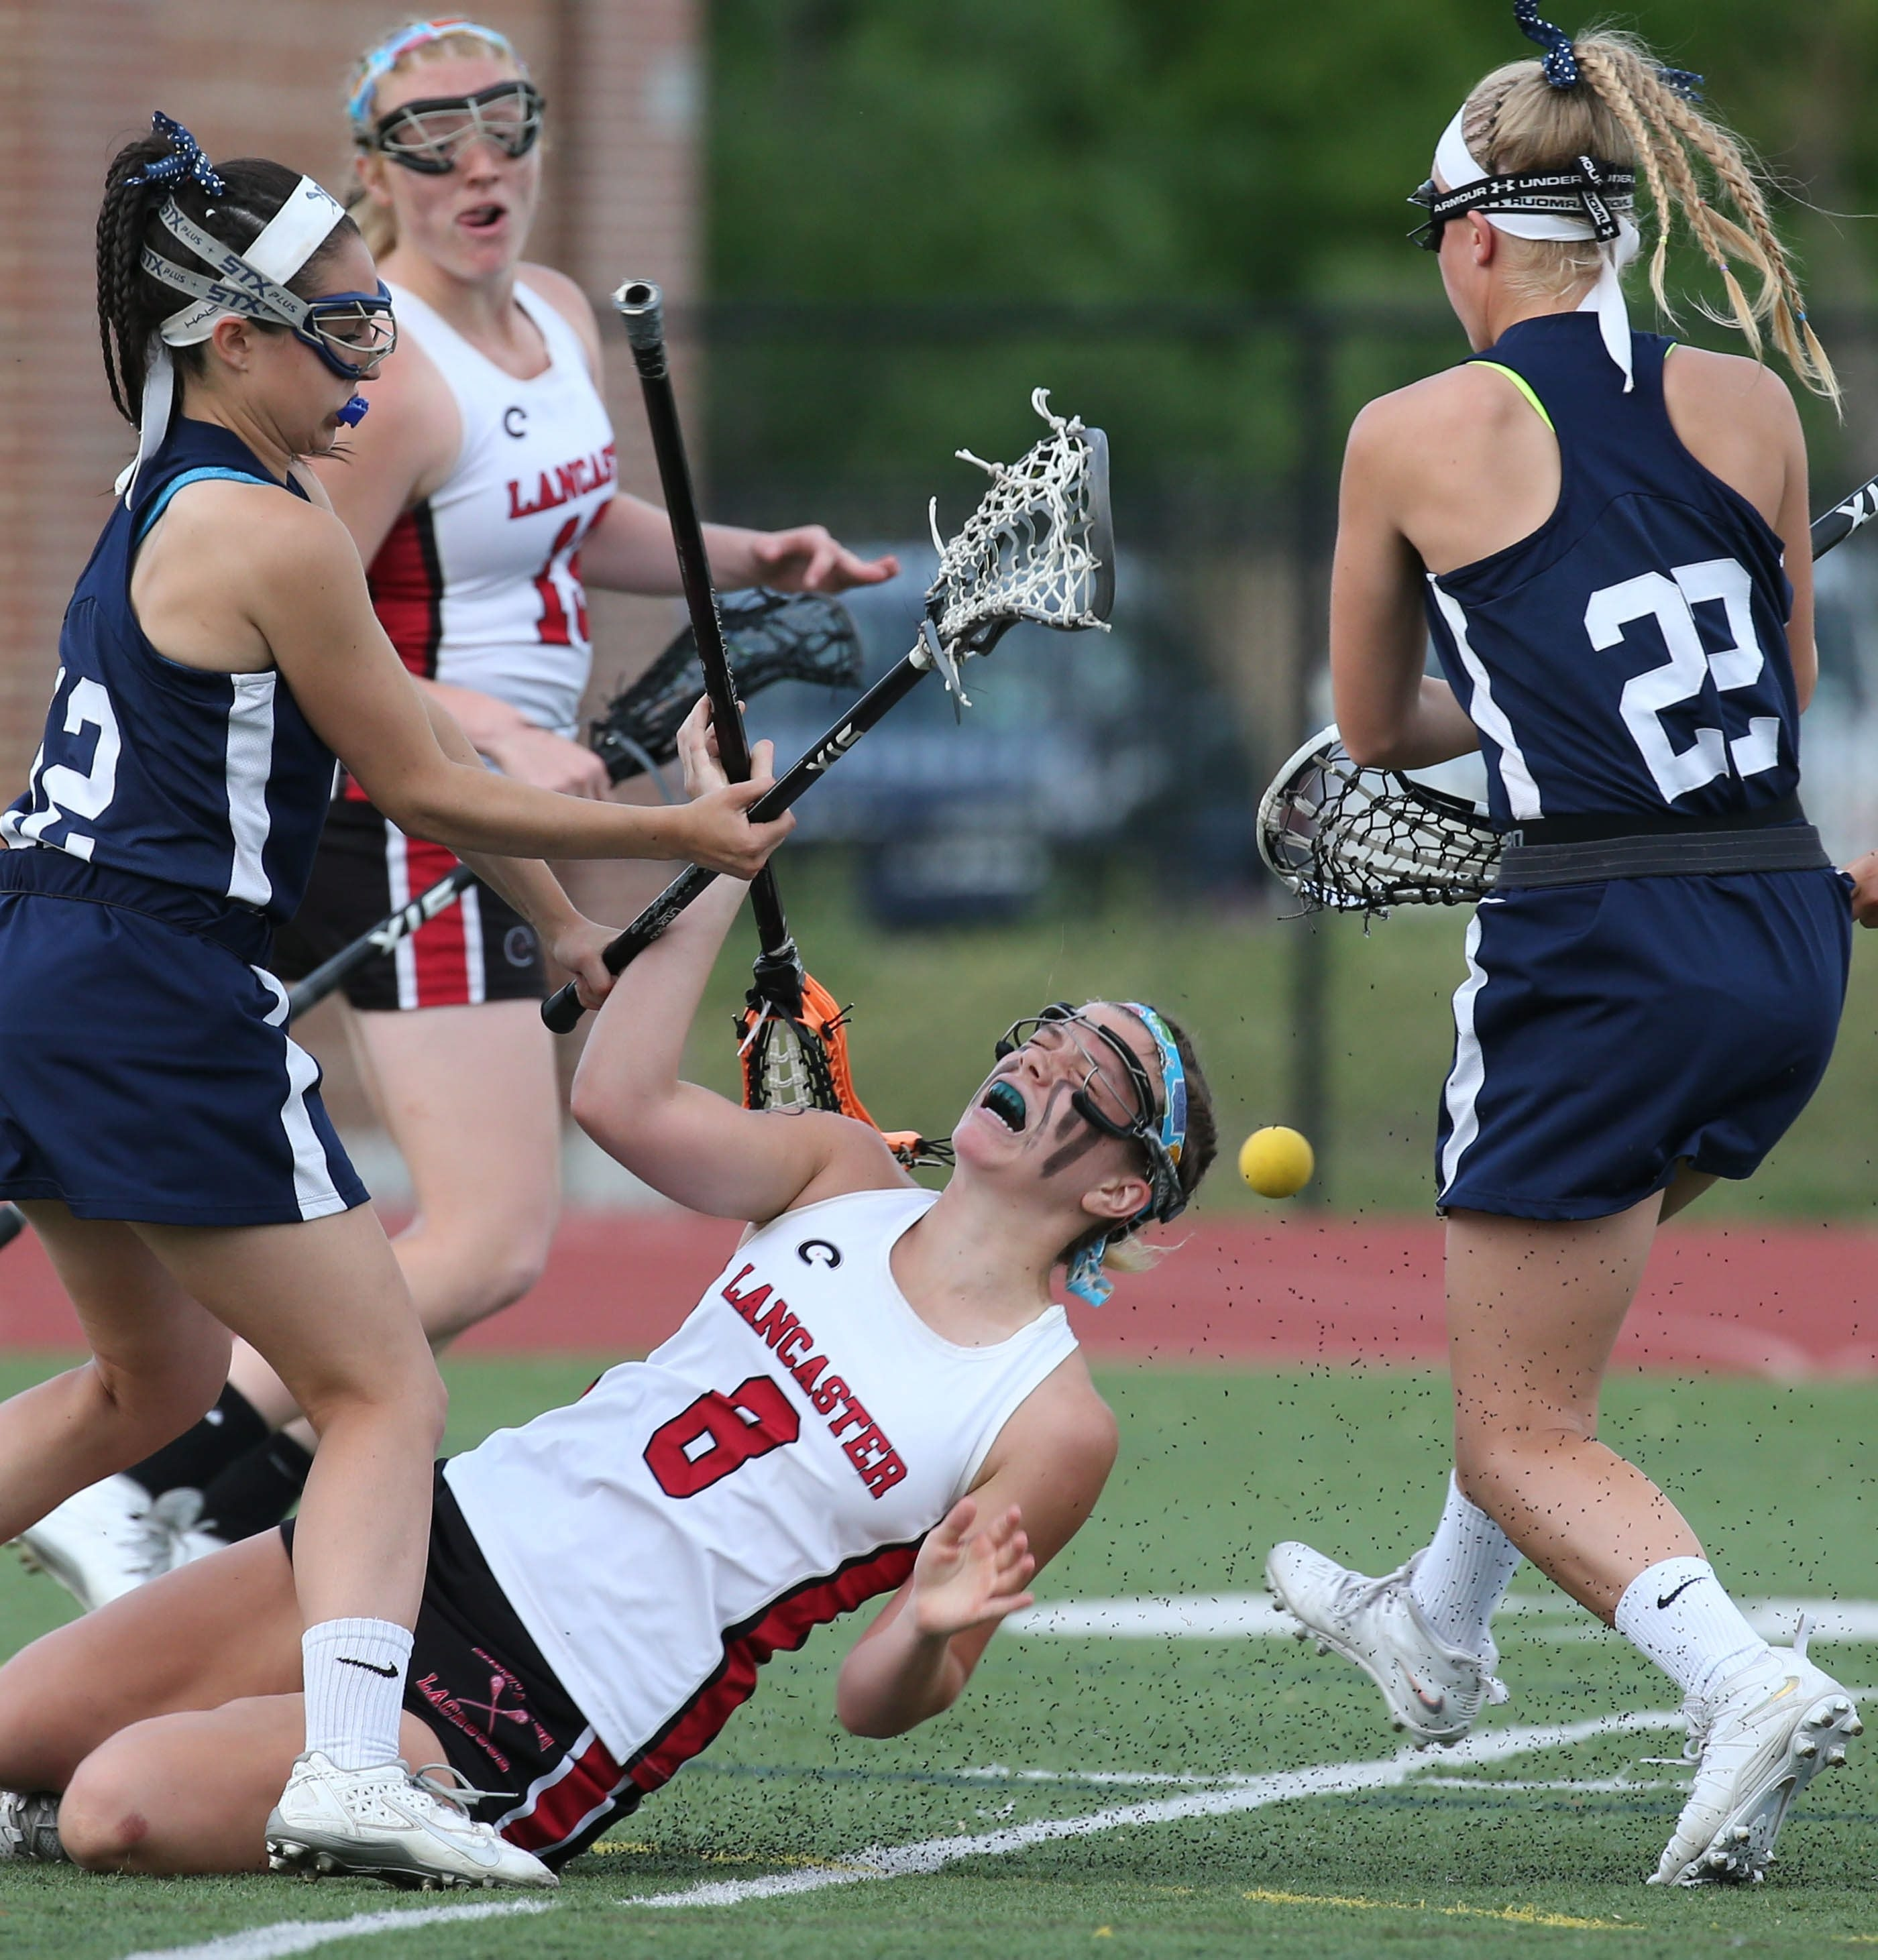 Lancaster's Grace Gabriel gets hit by Pittsford's Emily Wilson in the second half during the Class A Far West Regionals at All High Stadium.